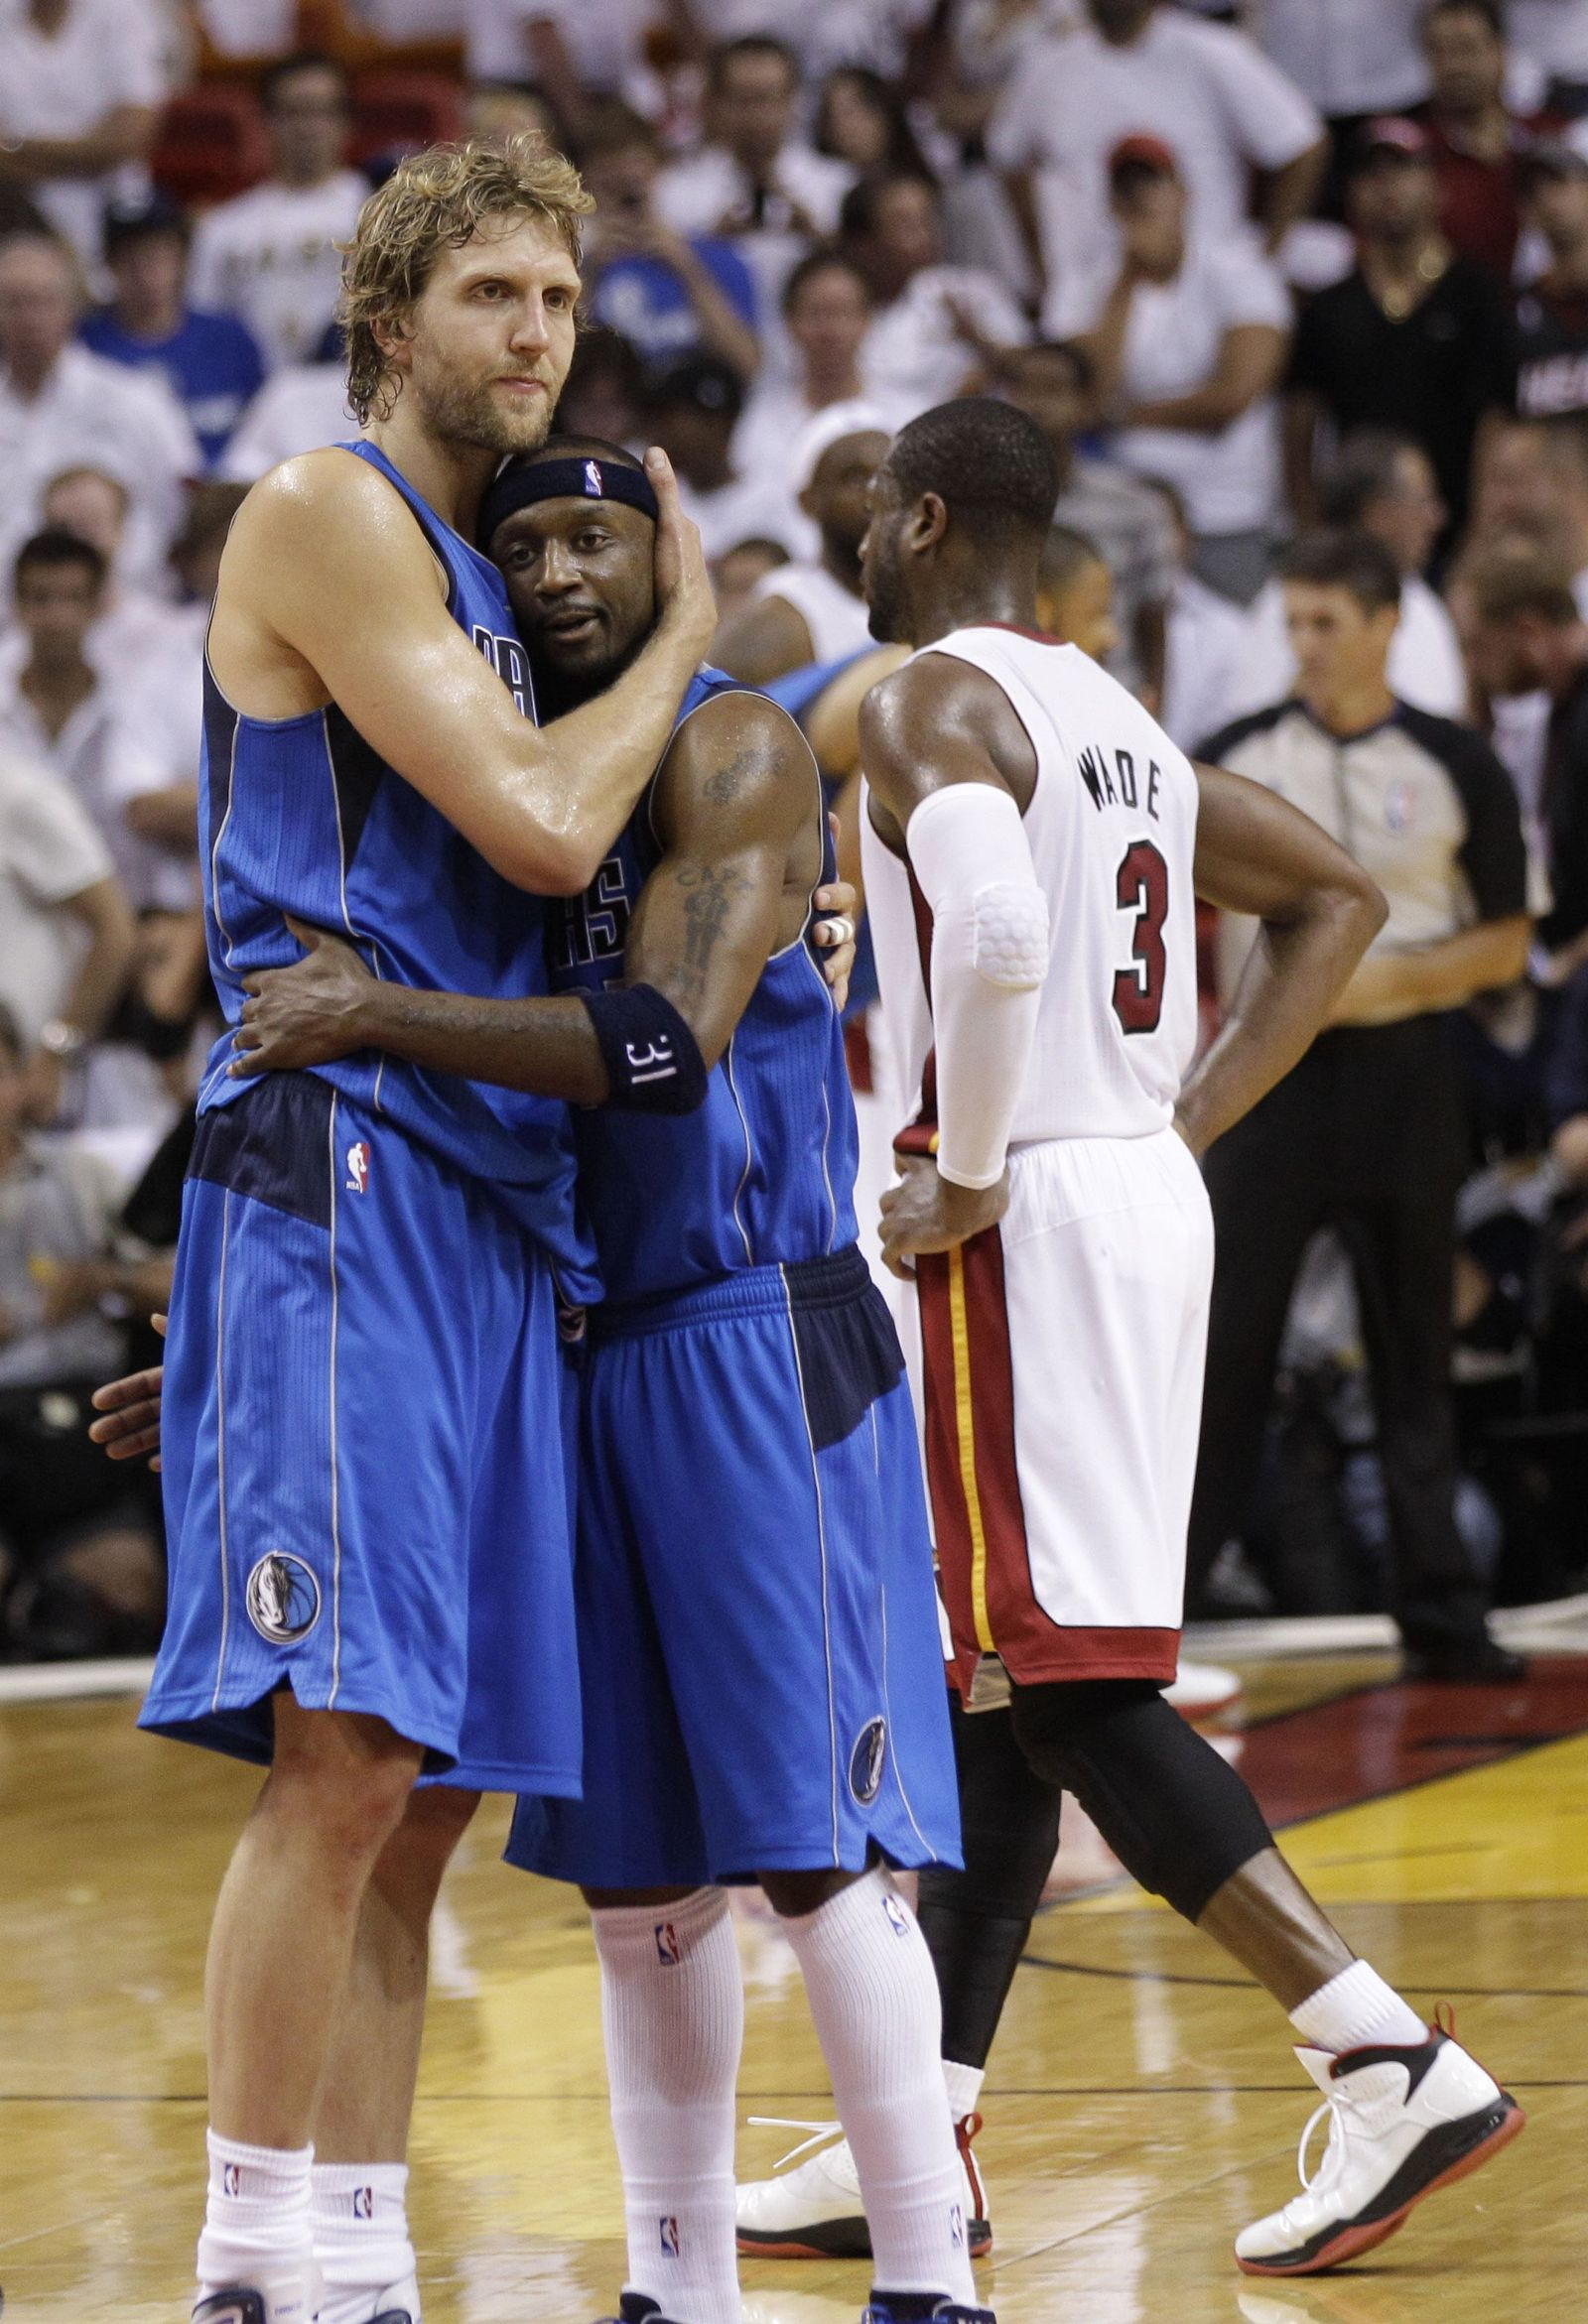 NBA Finals Mavericks Heat Basketball/Dirk Nowitzki